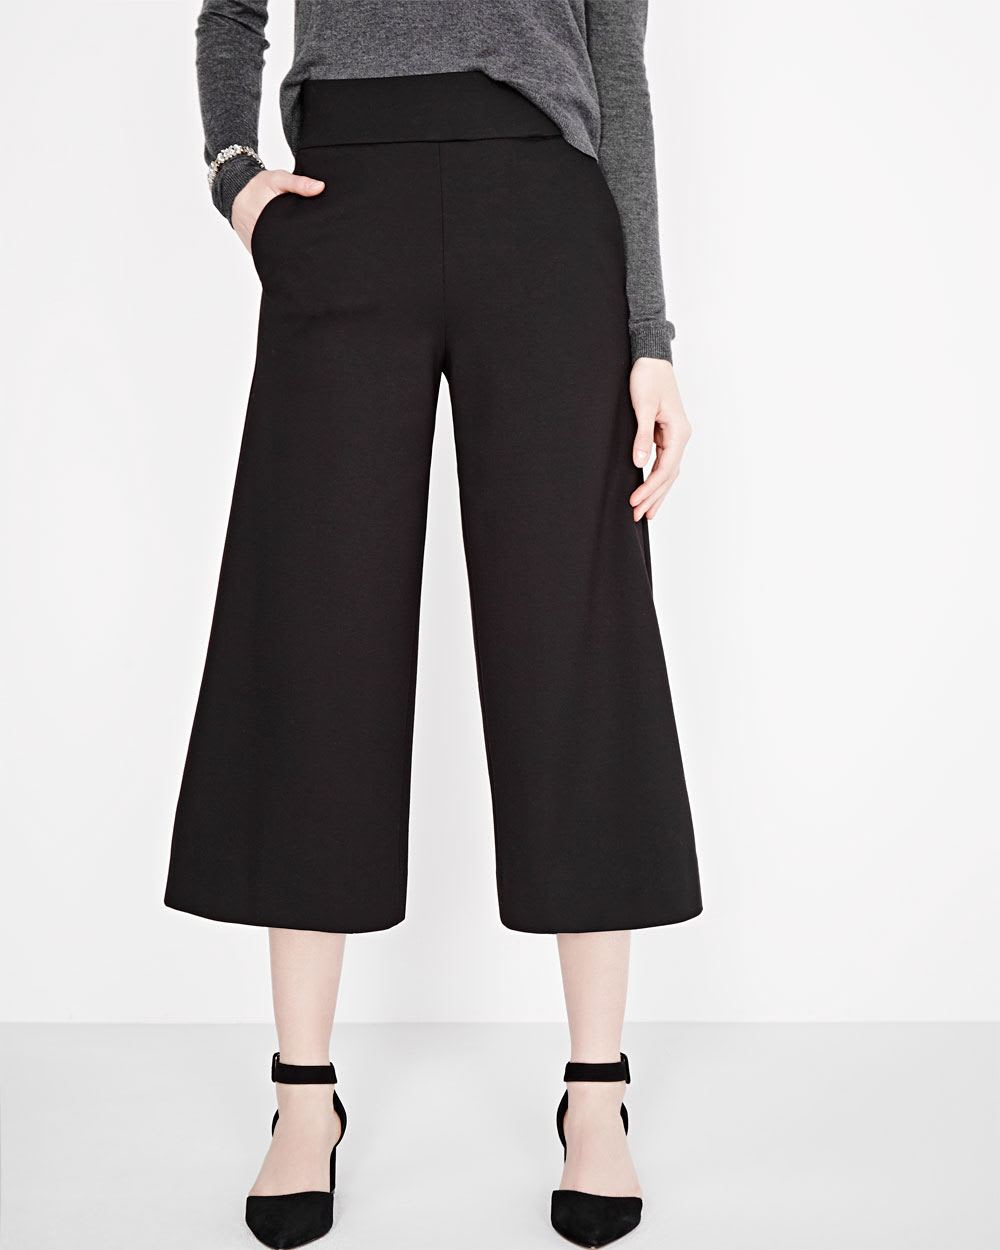 Shop for Pinstripe Wide-Leg Pull-On Pants at newbez.ml Find what you need with our on-trend clothing and designer collaborations. Free in-store shipping & returns.